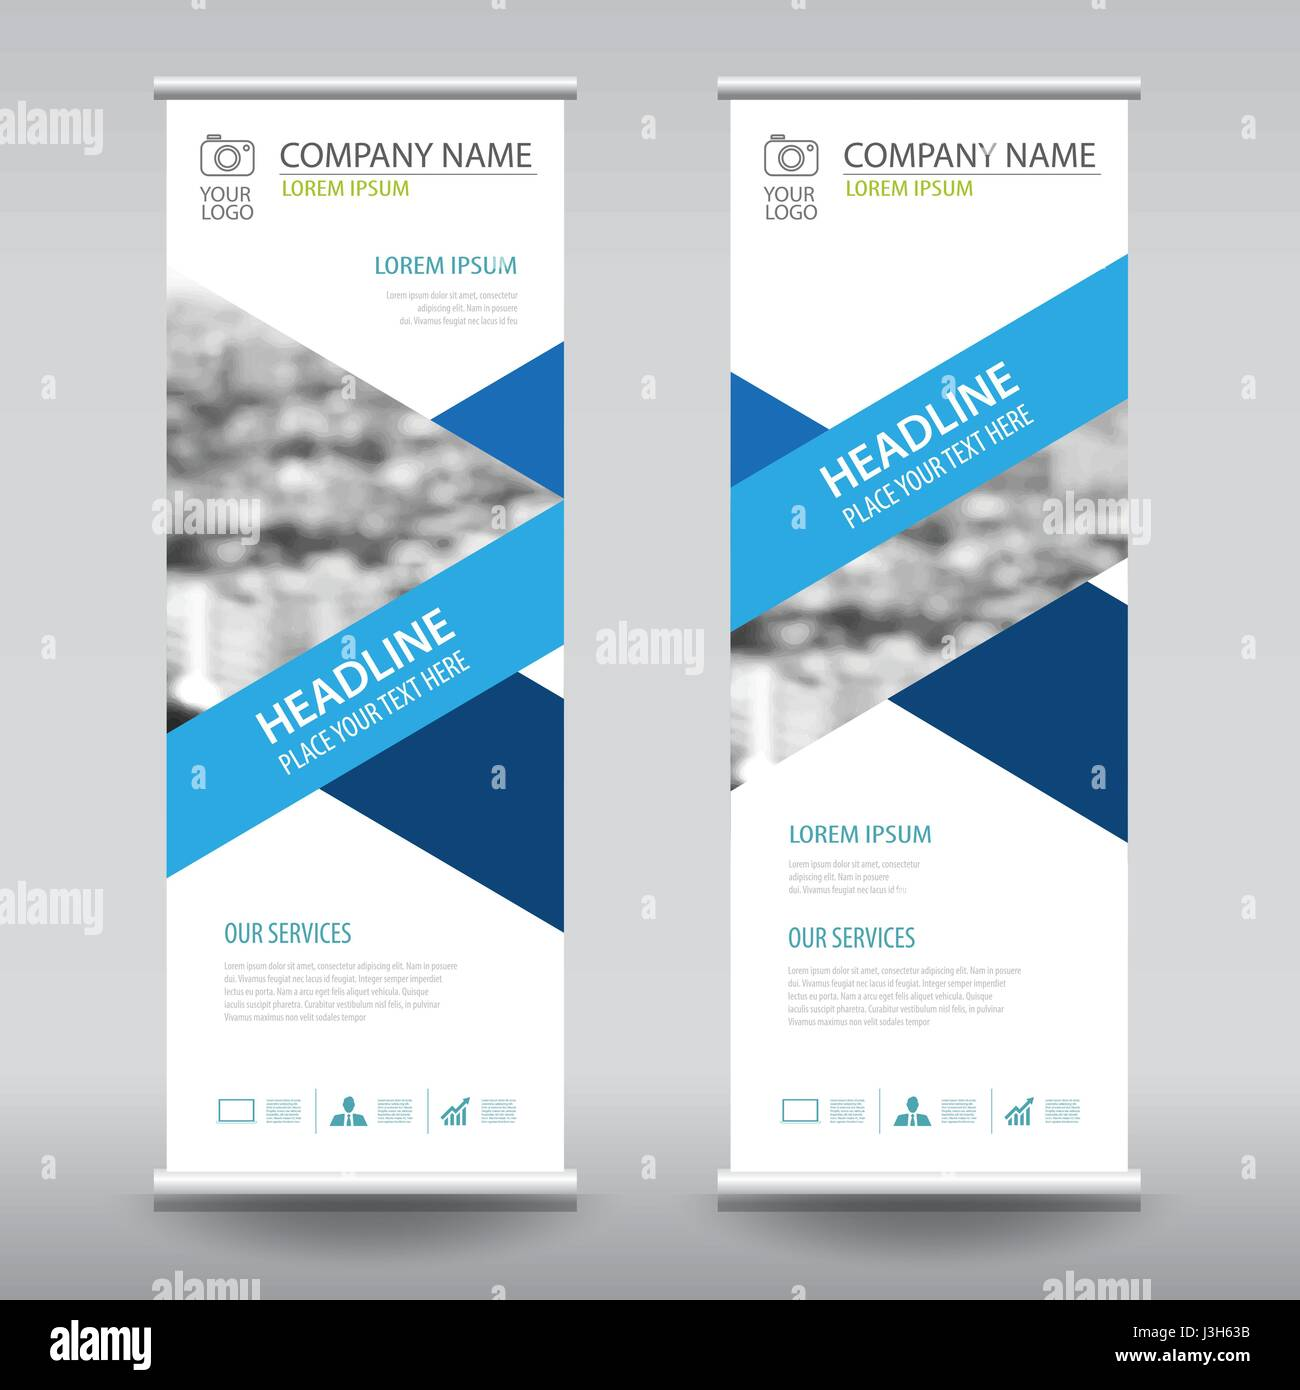 roll up business brochure flyer banner design vertical template vector cover presentation abstract geometric background modern publication x banner